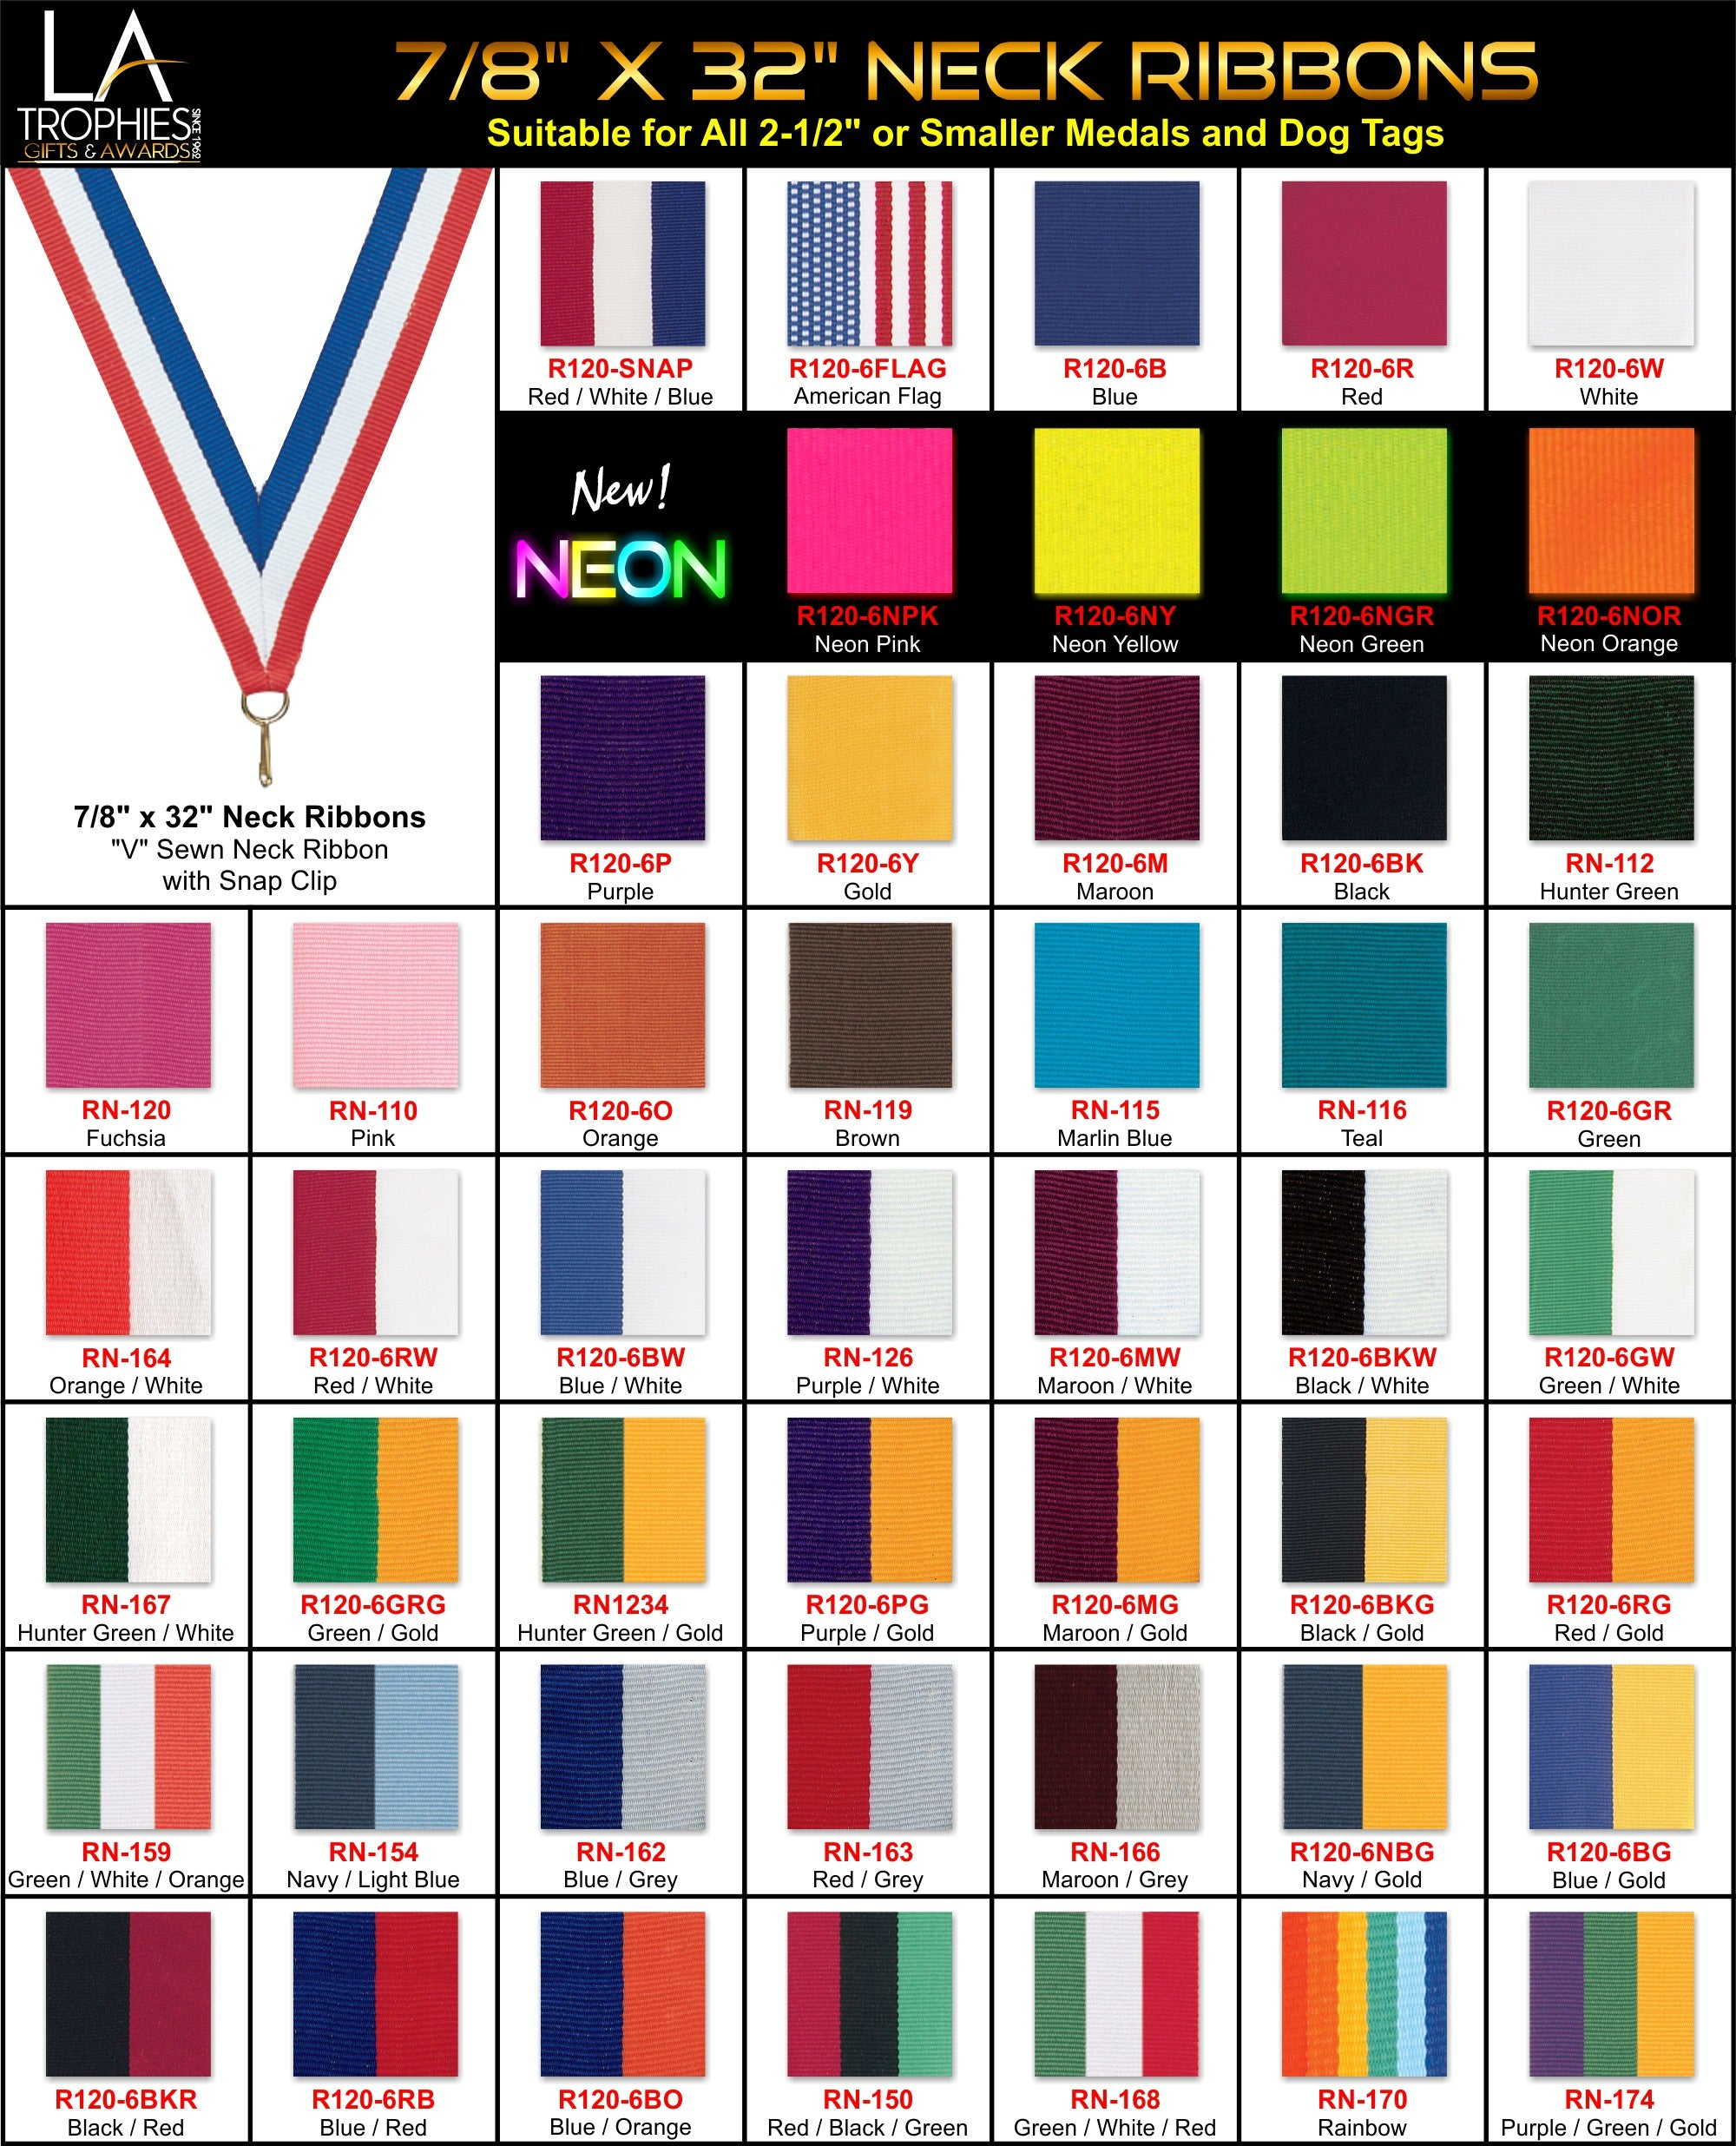 """7/8"""" Neck Ribbons for Medals 2-1/2"""" or Smaller"""